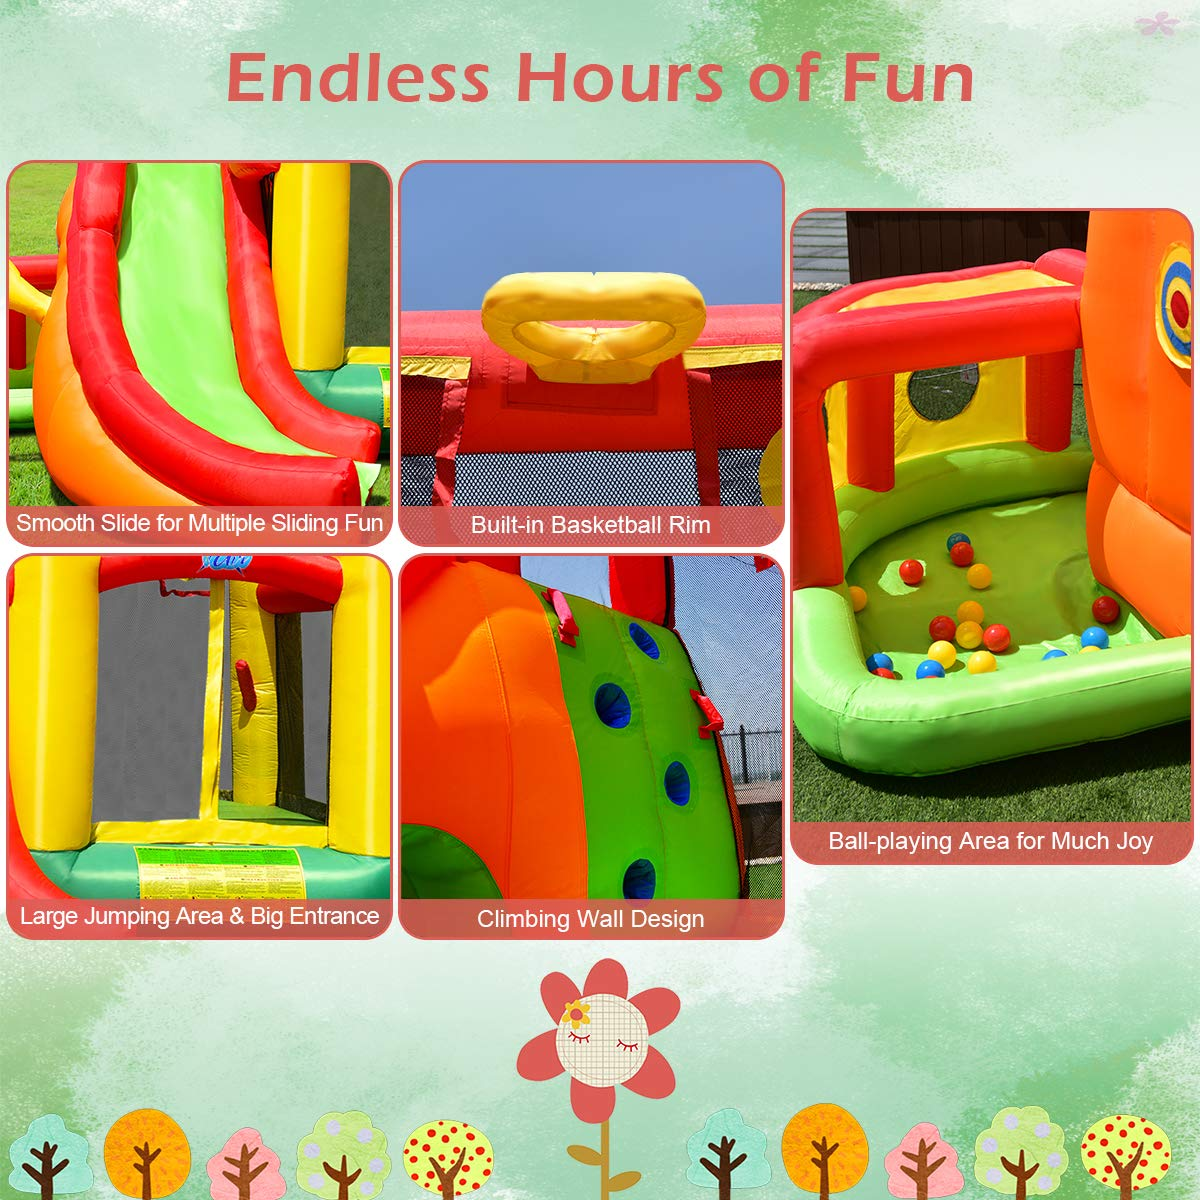 Costzon Inflatable Bounce House, 11 in 1 Mighty Kids Jump and Slide Castle  w/ Climbing Wall, Tunnel, Basketball Hoop, Playing Area, Including Oxford